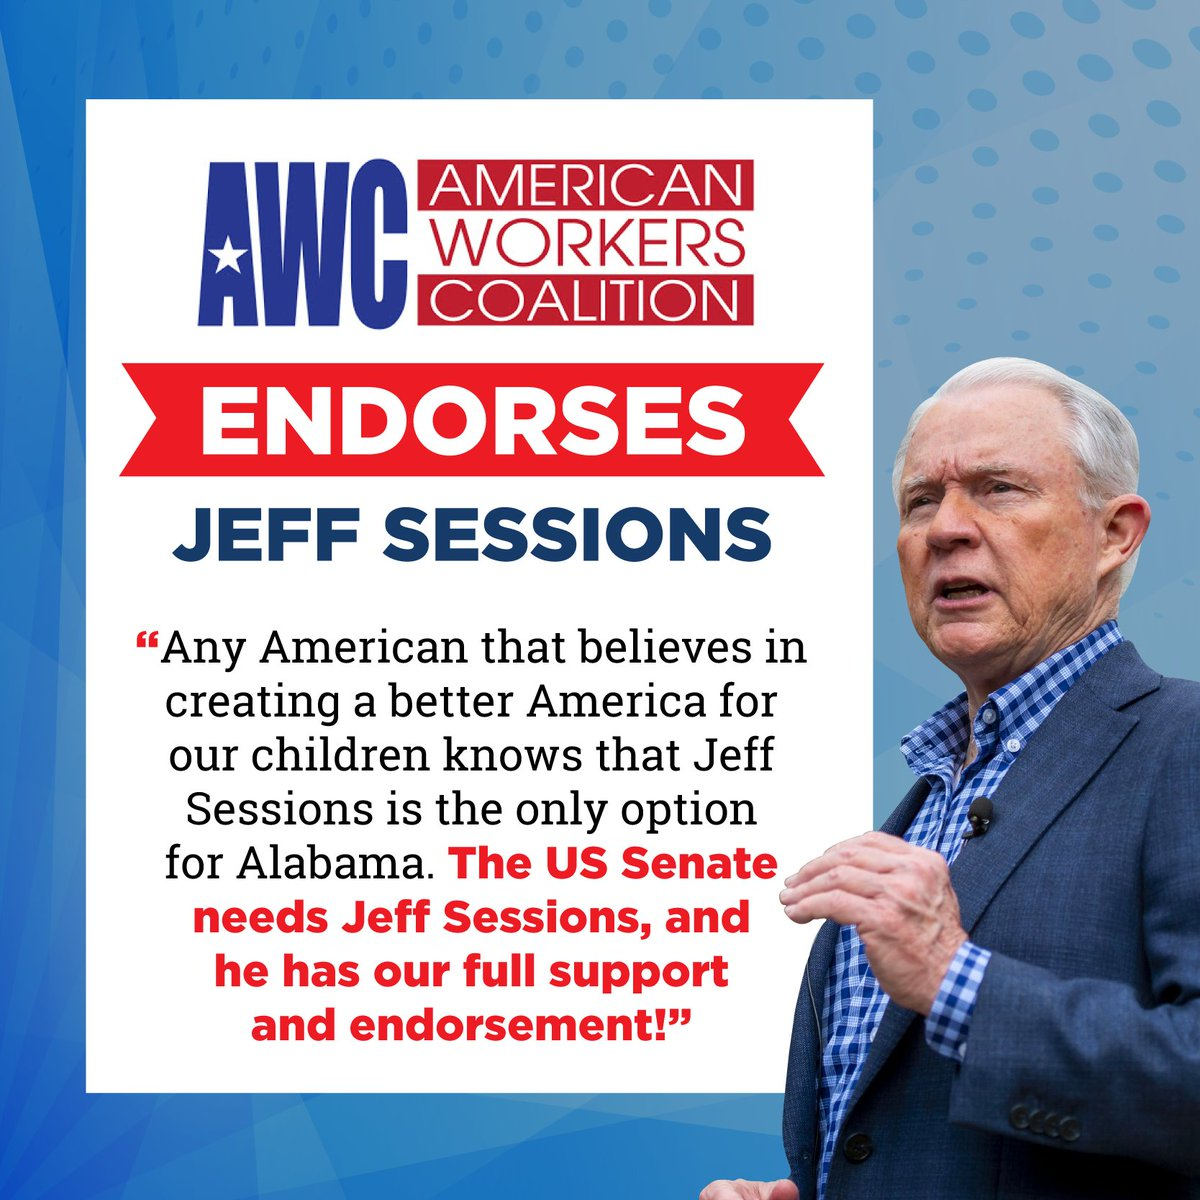 I appreciate the support of the American Workers Coalition! @AmWorkCo